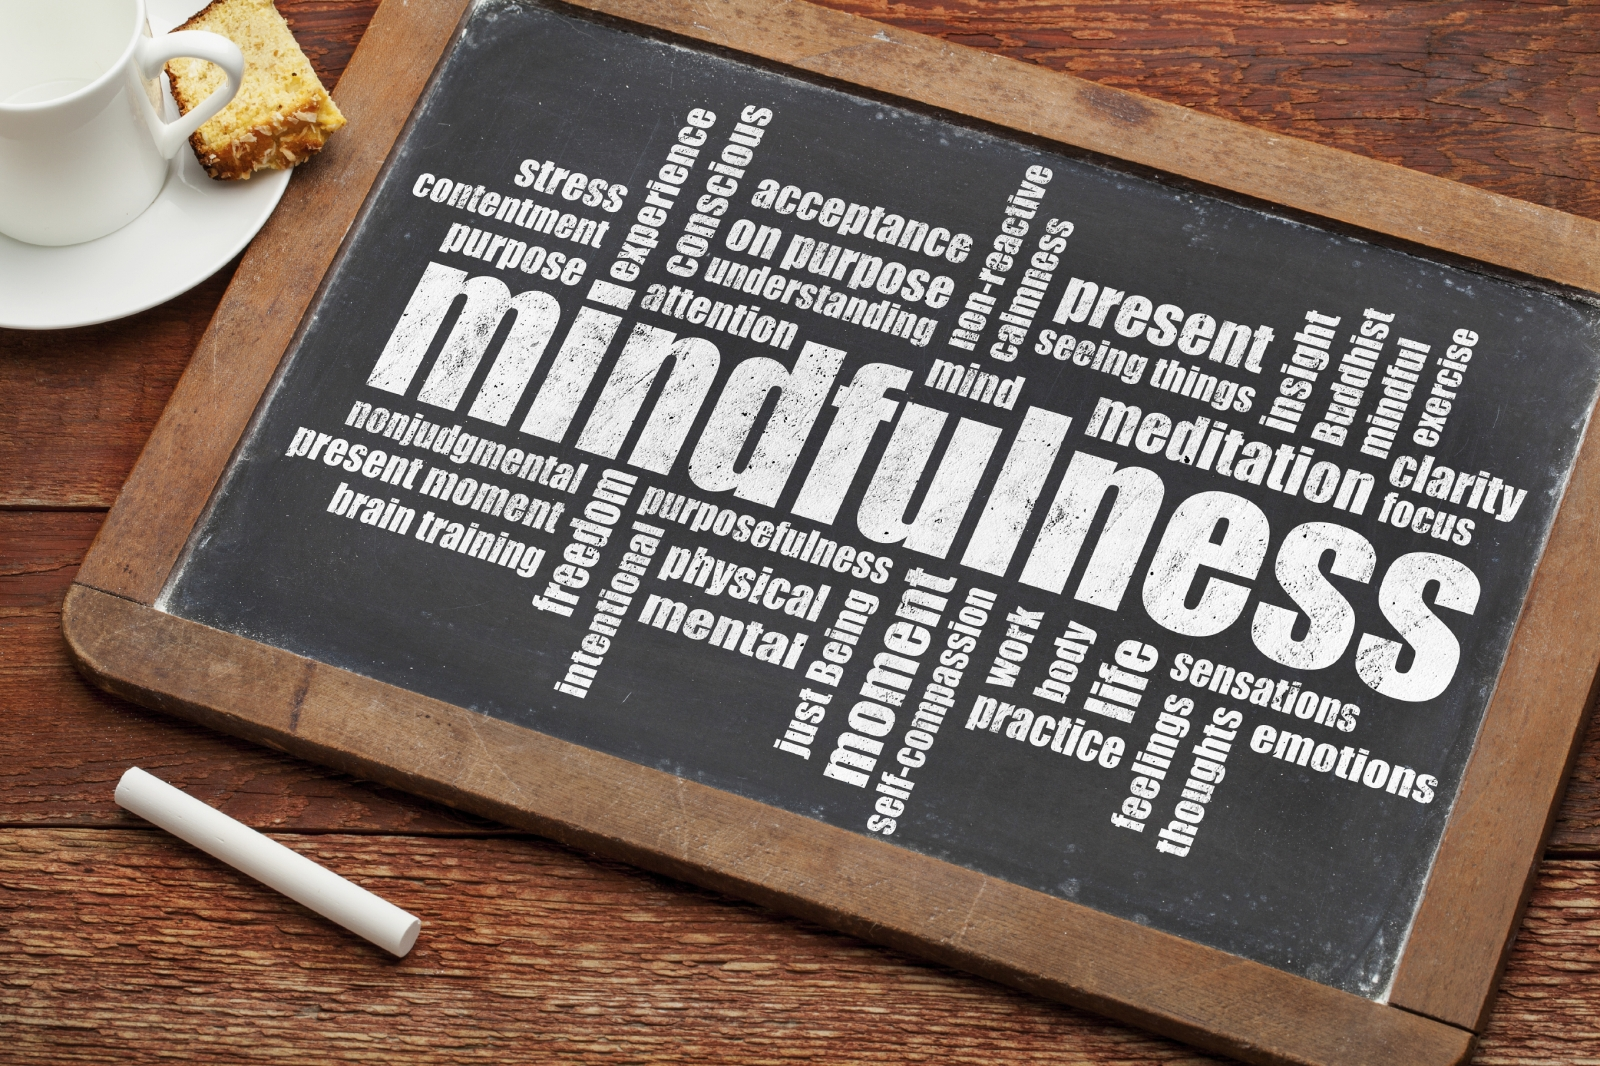 mindfulness depression treatment